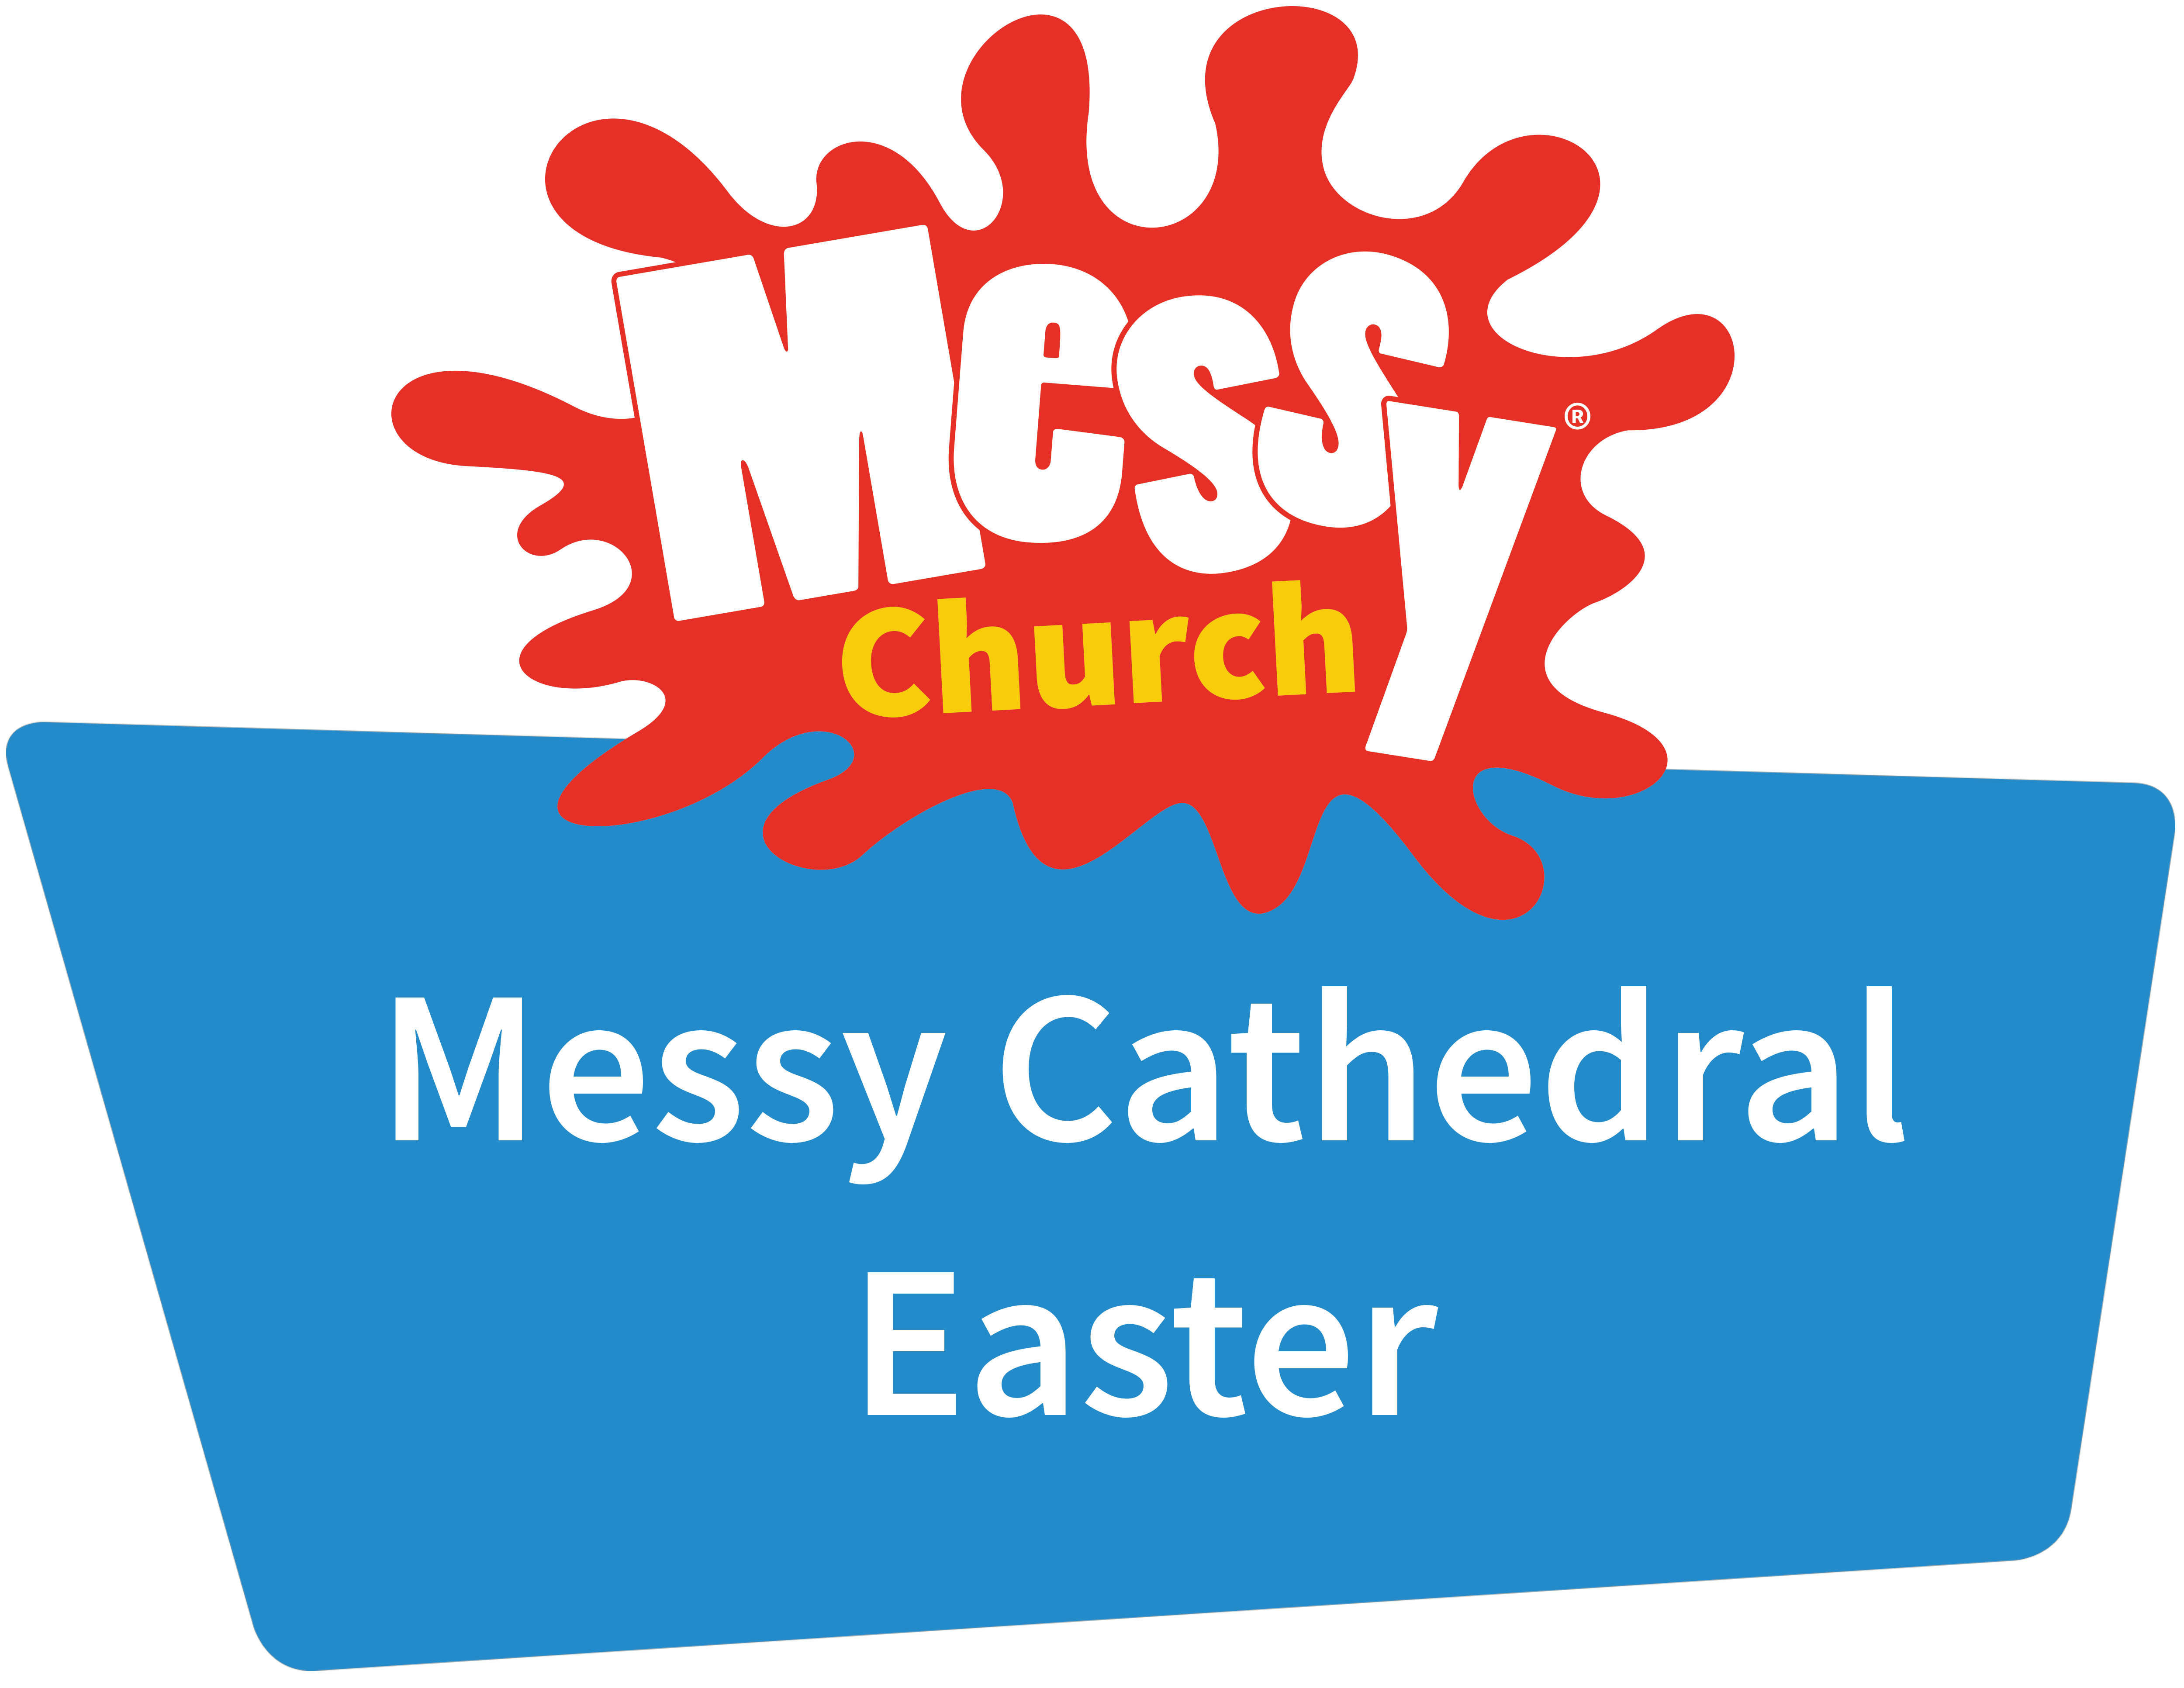 Messy Cathedral Easter